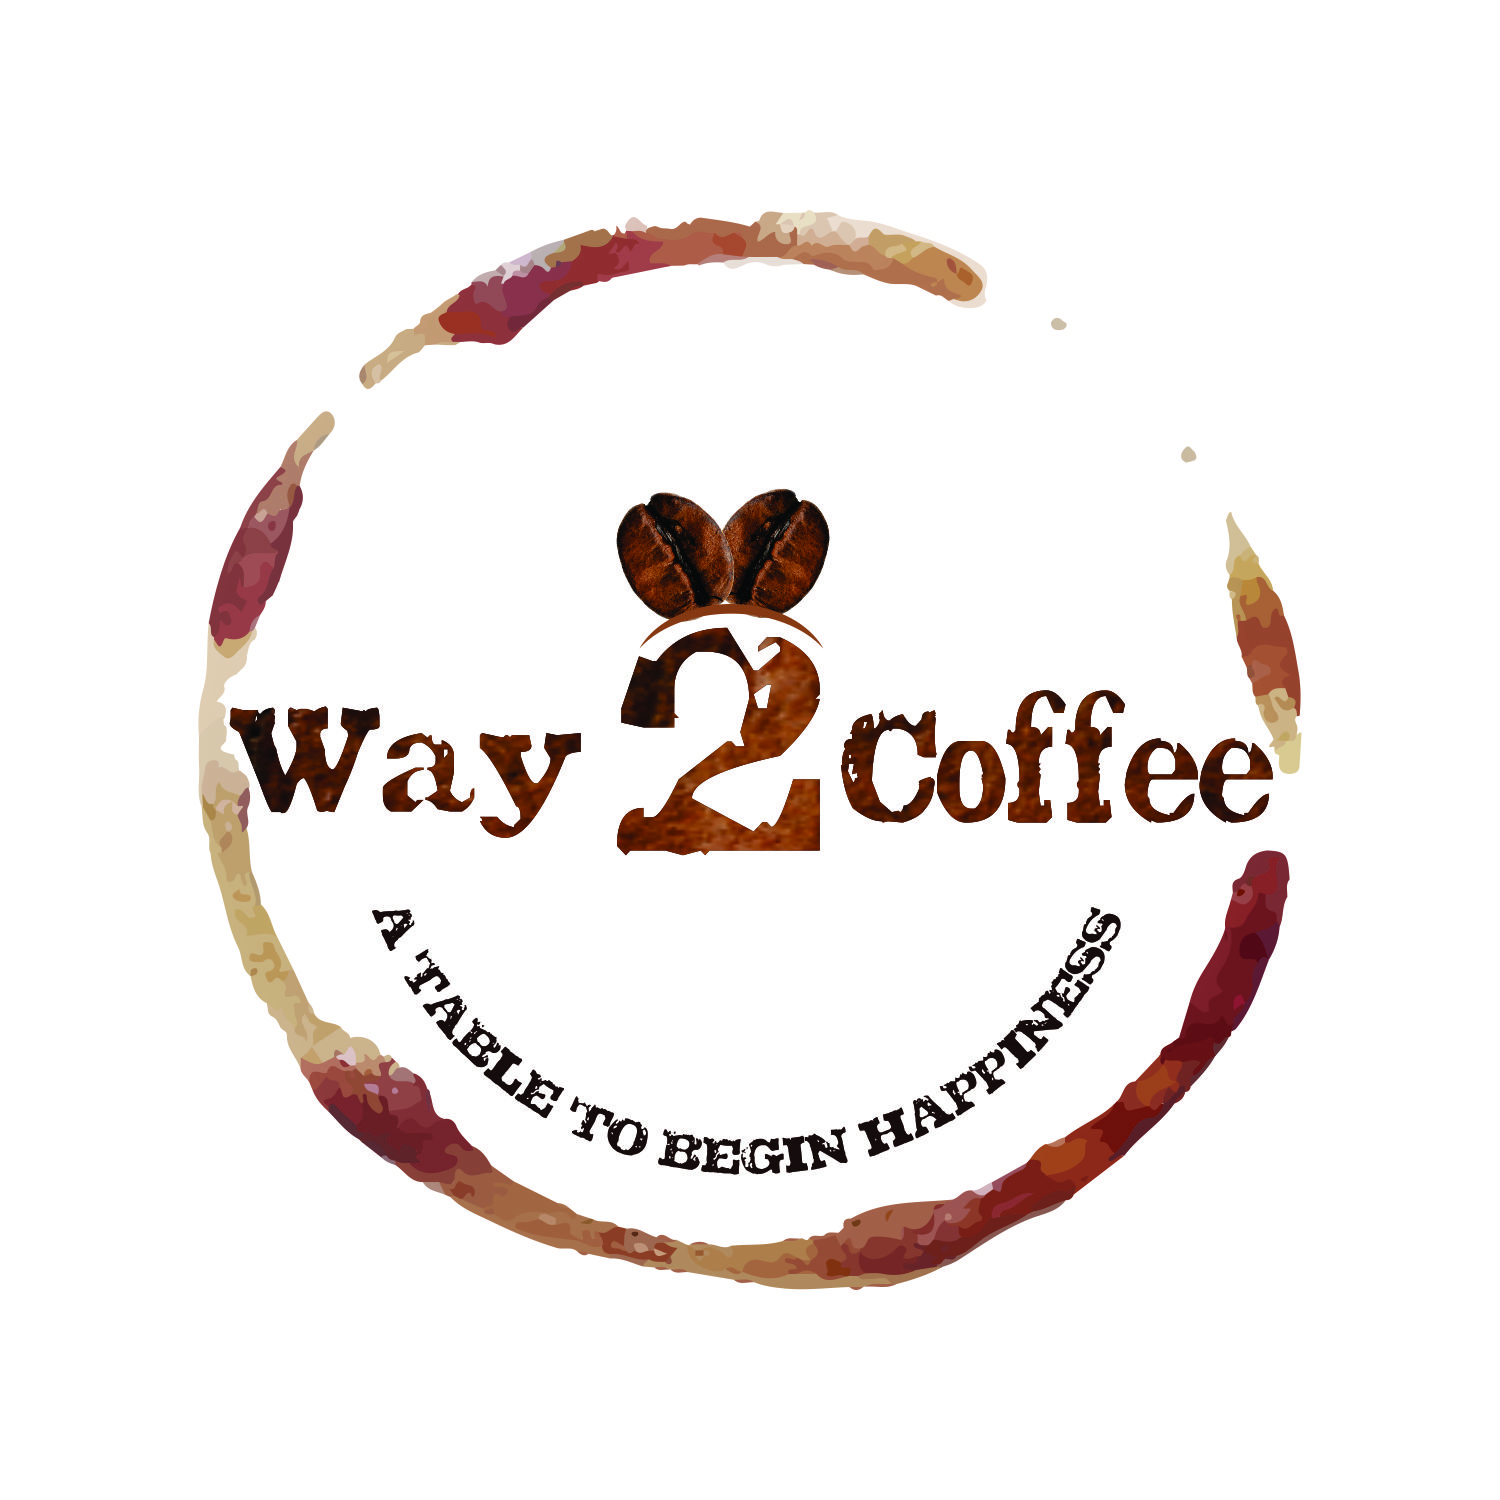 Way 2 Coffee